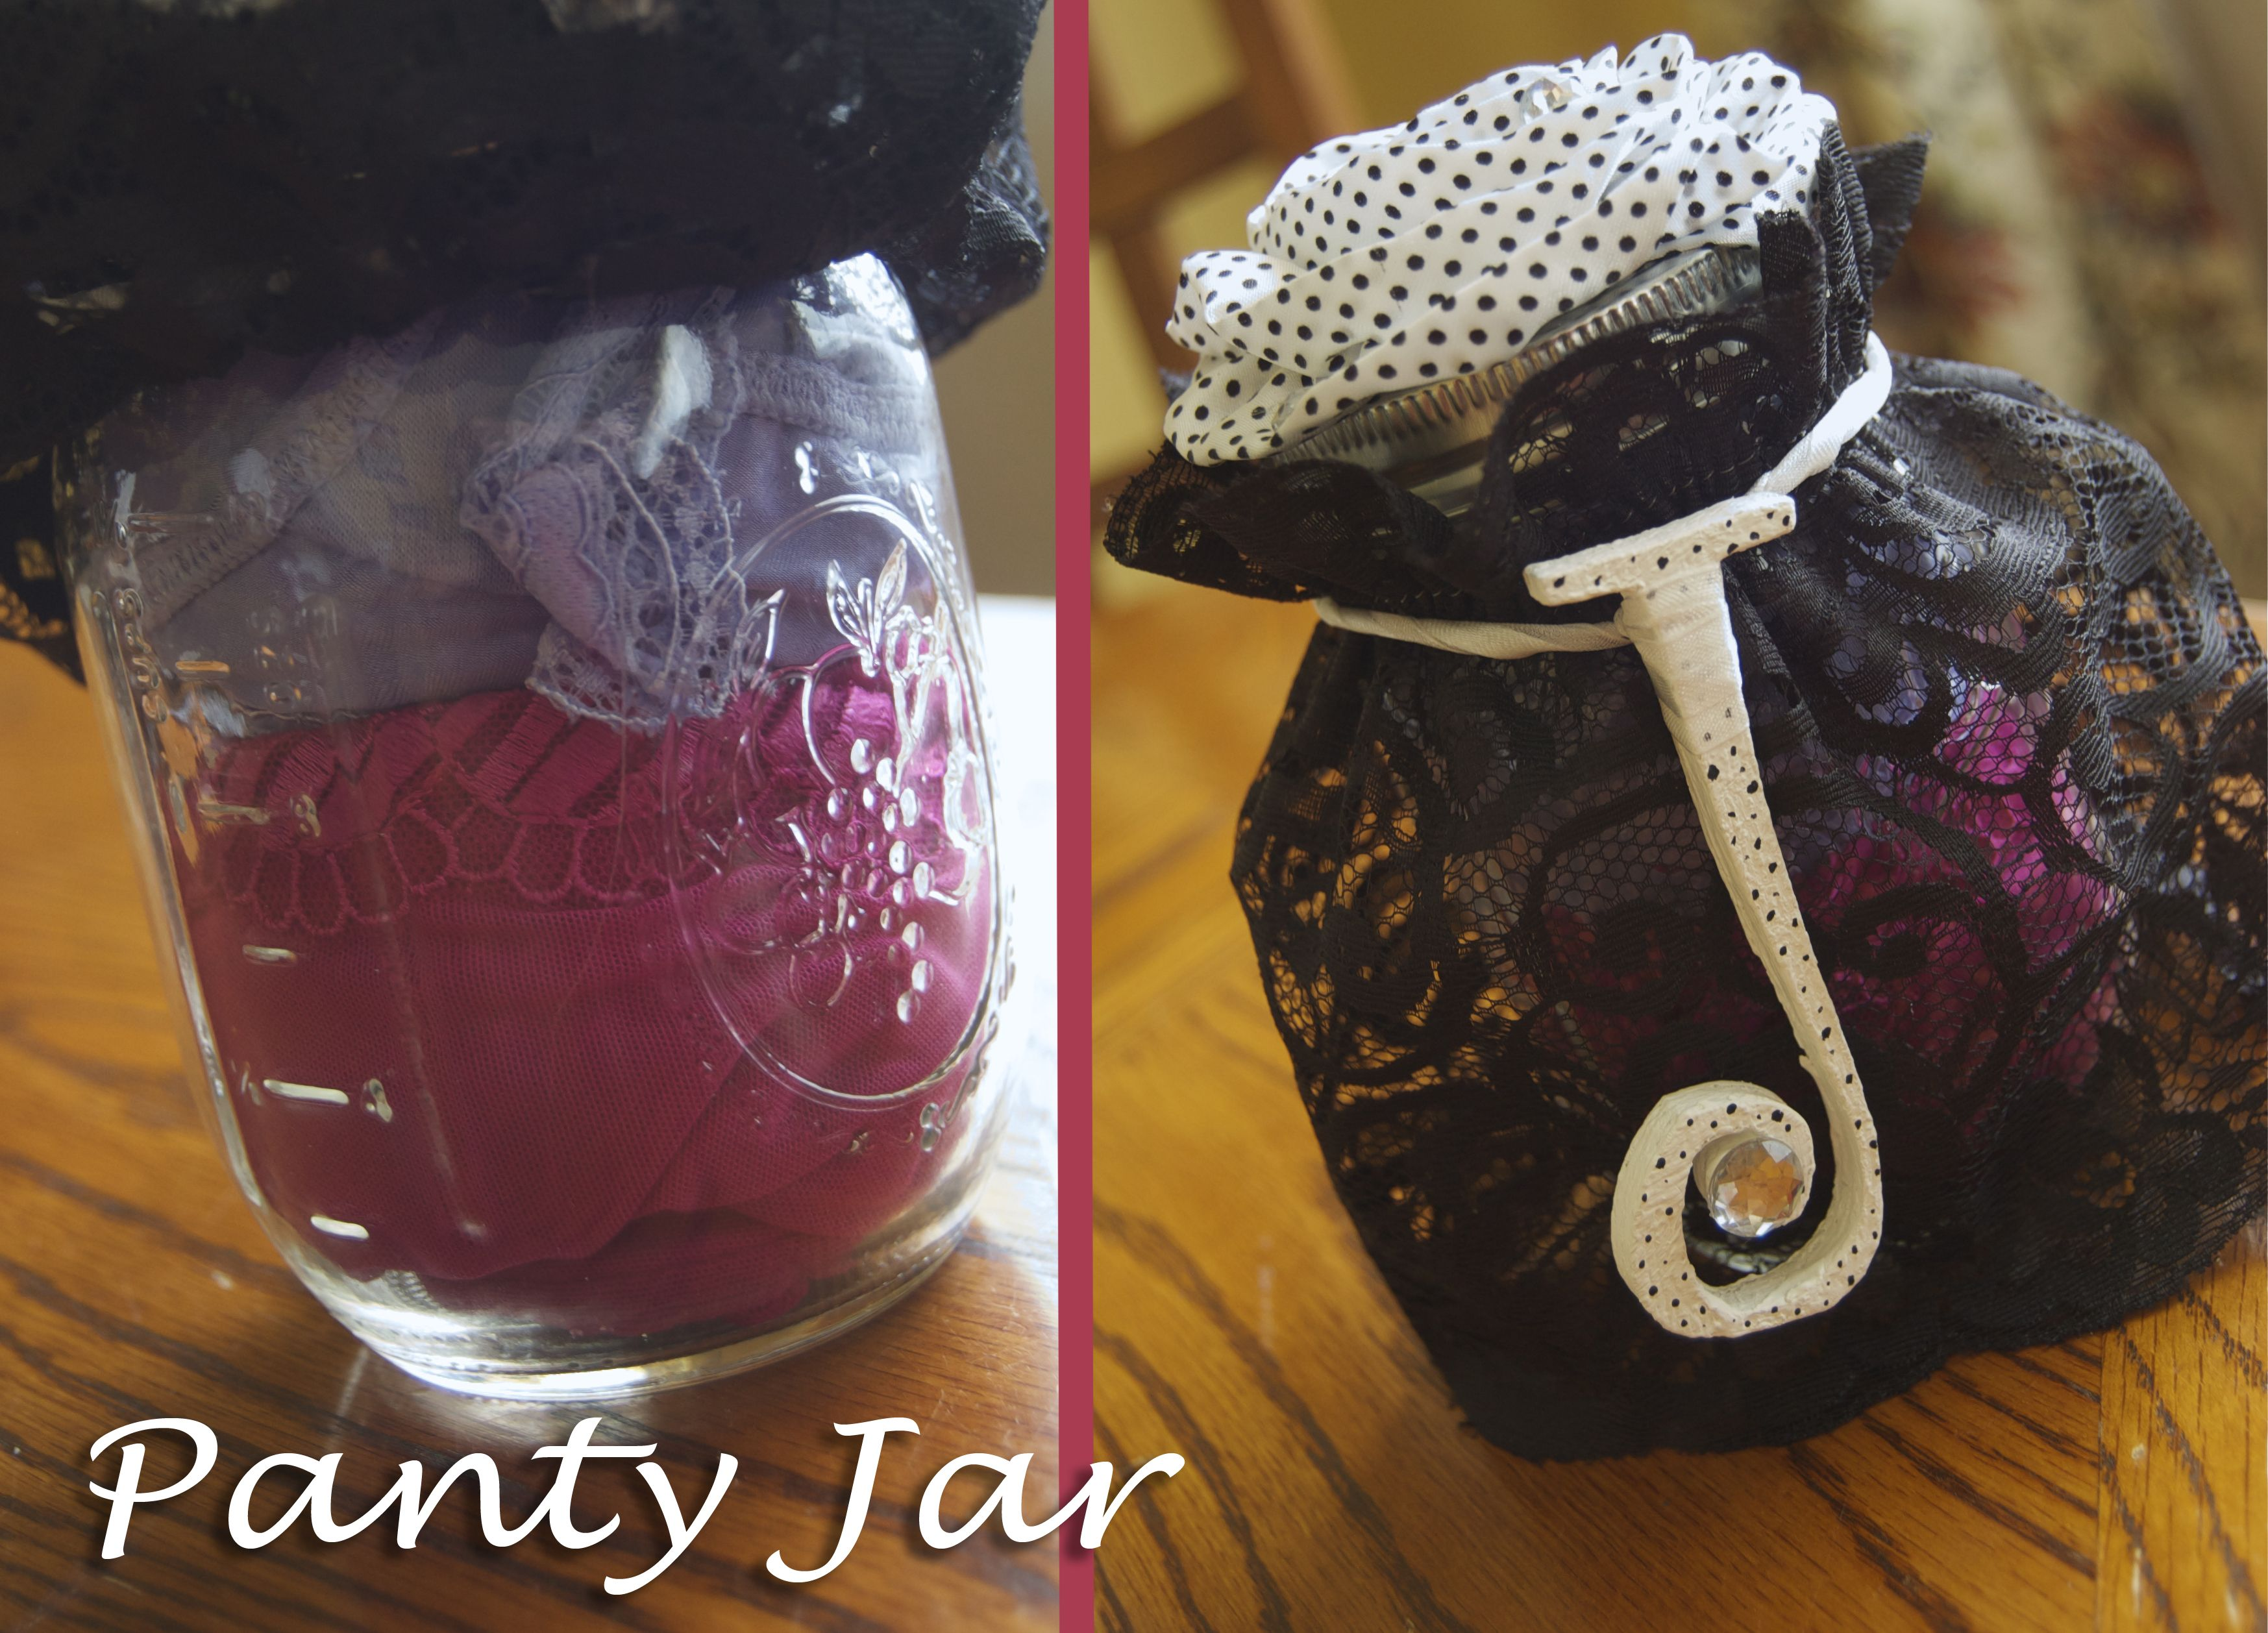 wedding shower poem ideas%0A Panty Jar for lingerie bridal shower gift  Mason jar filled with panties   covered with wide elastic lace ribbon  Topped with a fabric bow